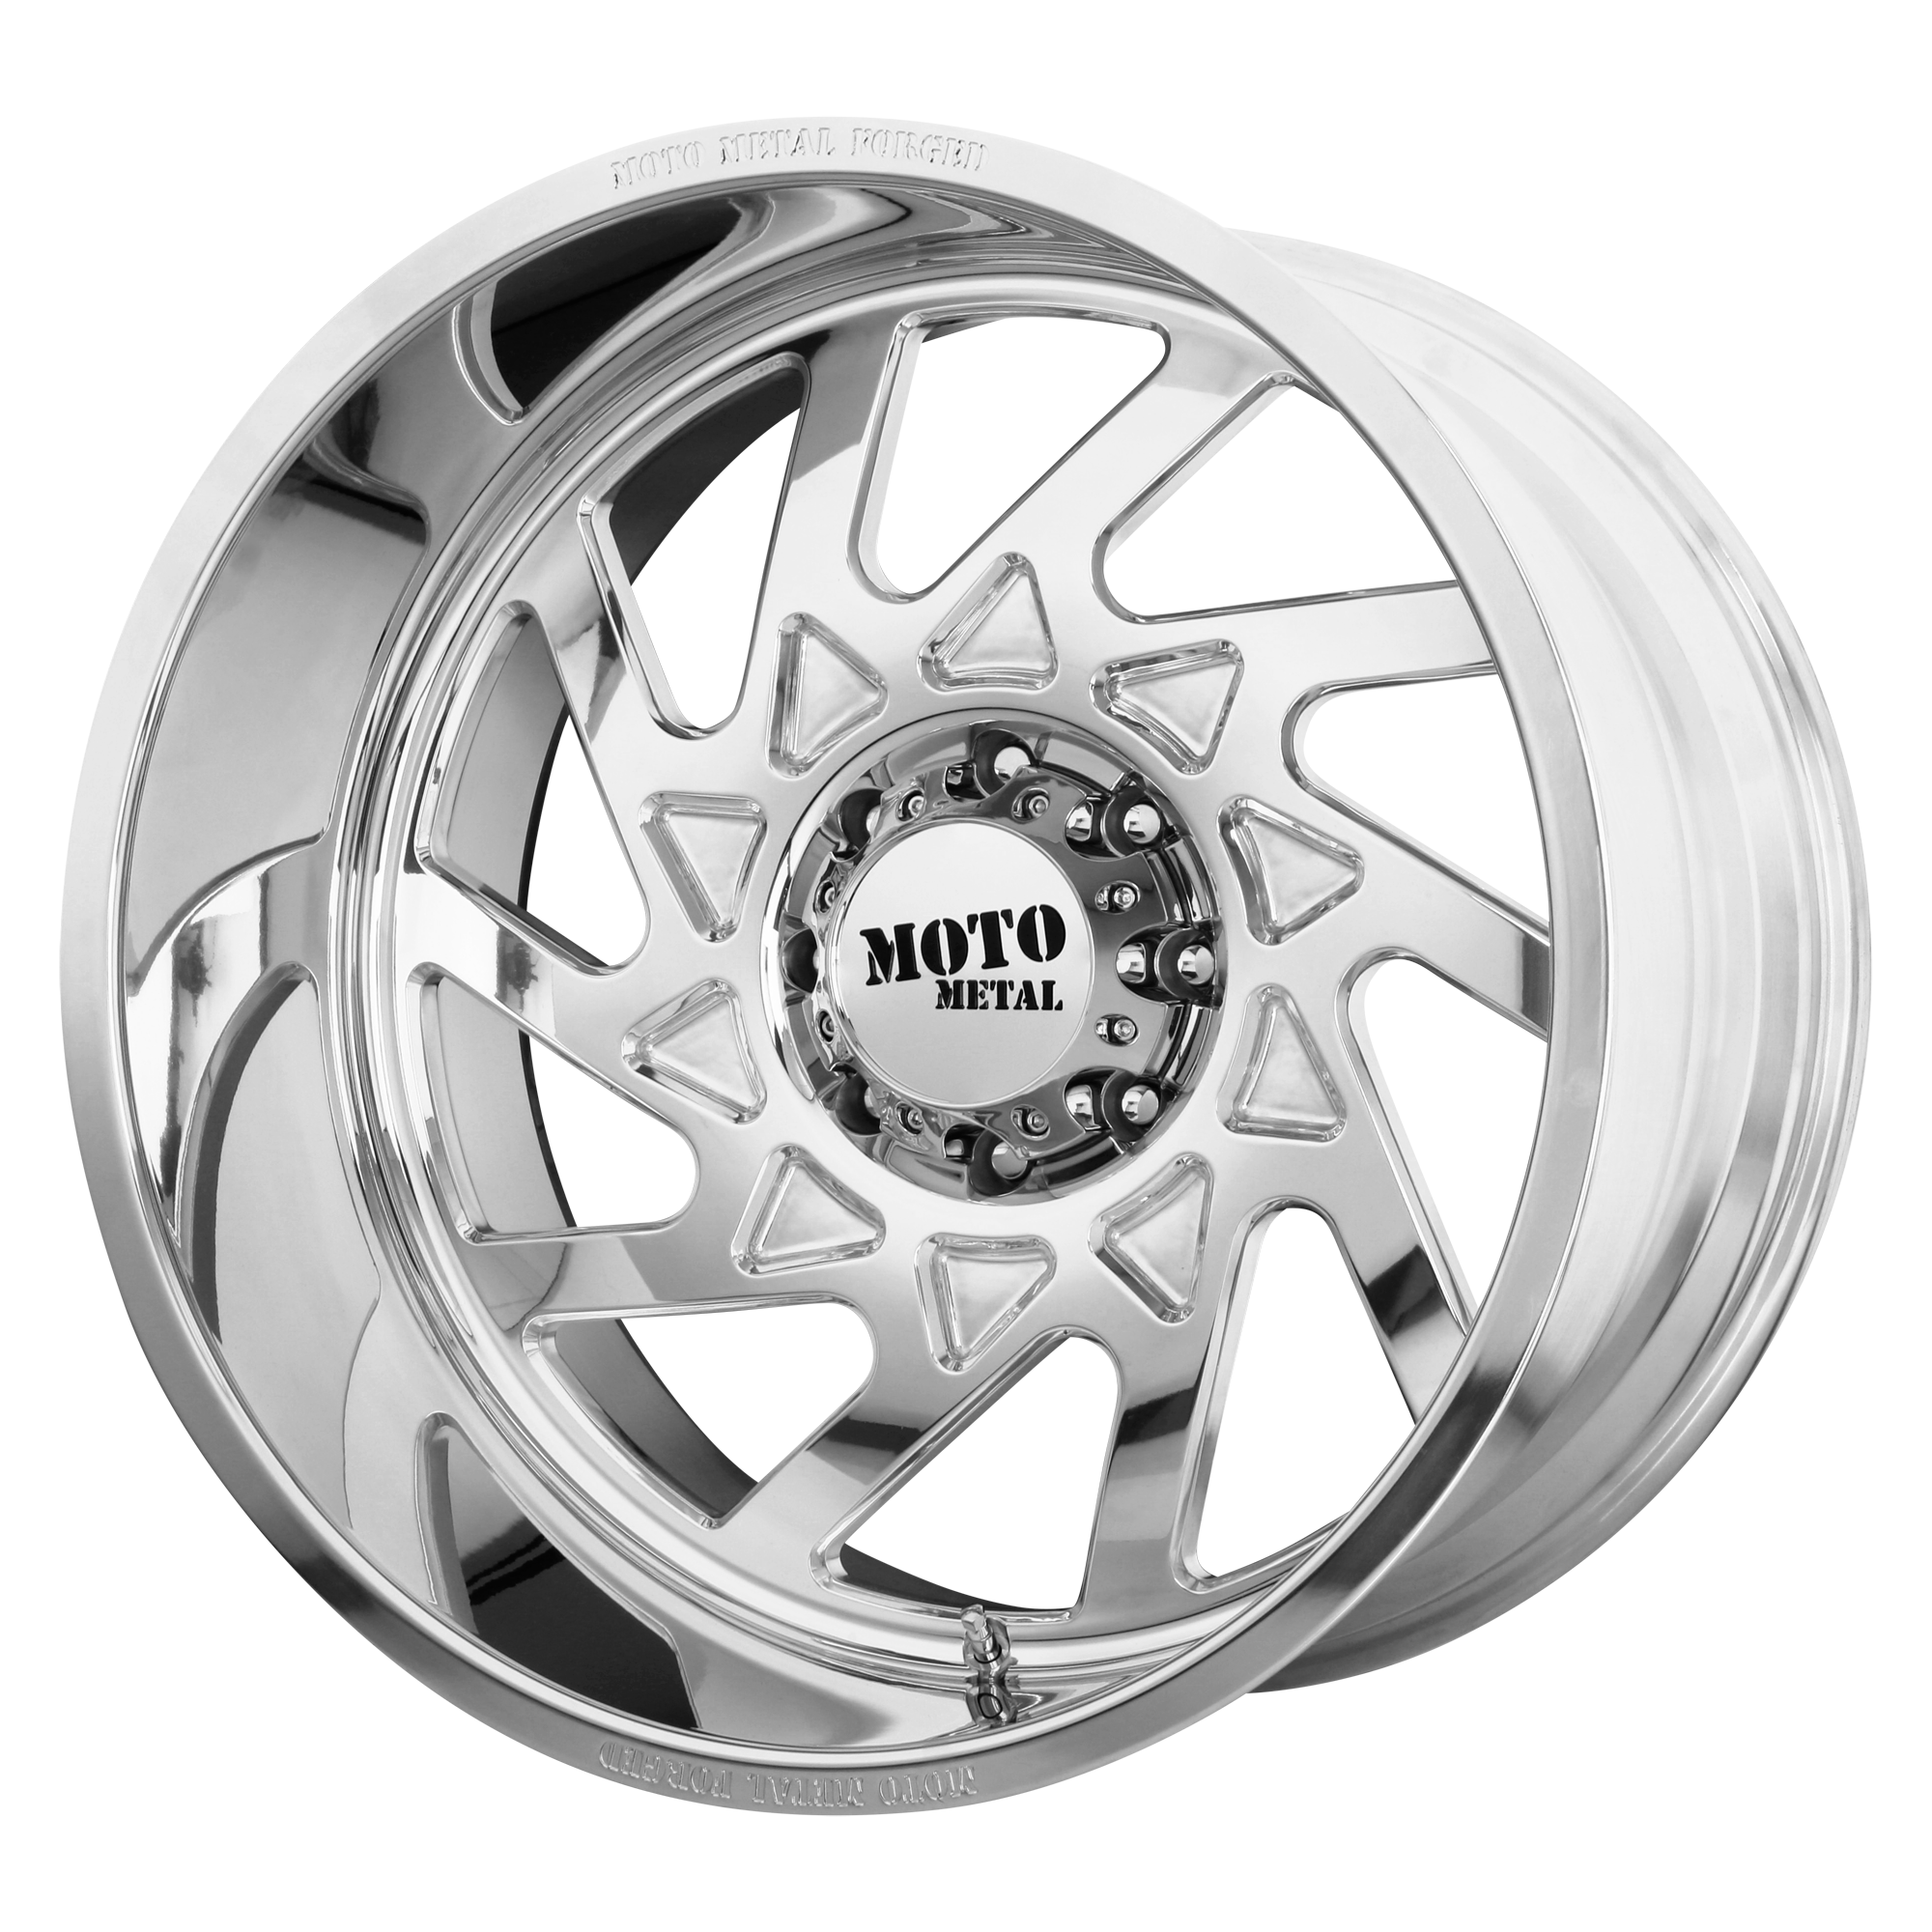 Moto Metal Offroad Wheels MO403 Polished